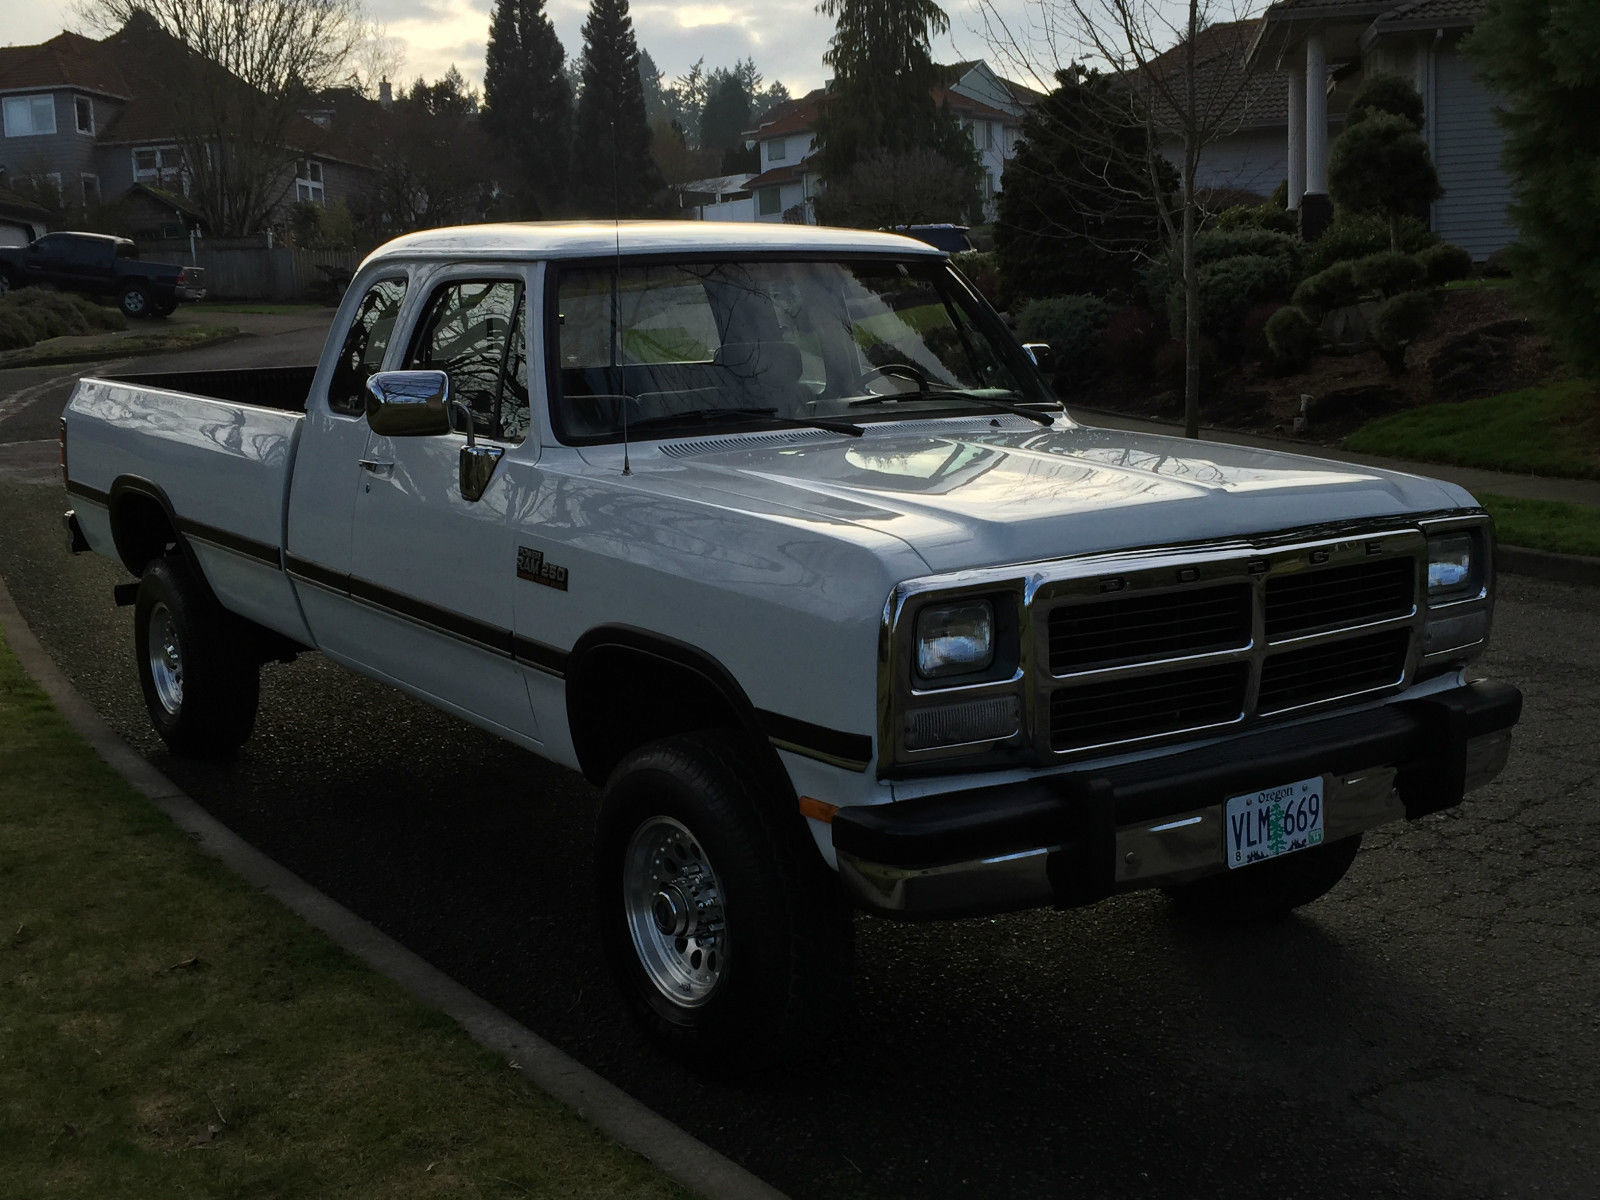 1993 dodge ram 2500 4x4 extra cab cummins diesel first gen 116k miles like new classic dodge. Black Bedroom Furniture Sets. Home Design Ideas